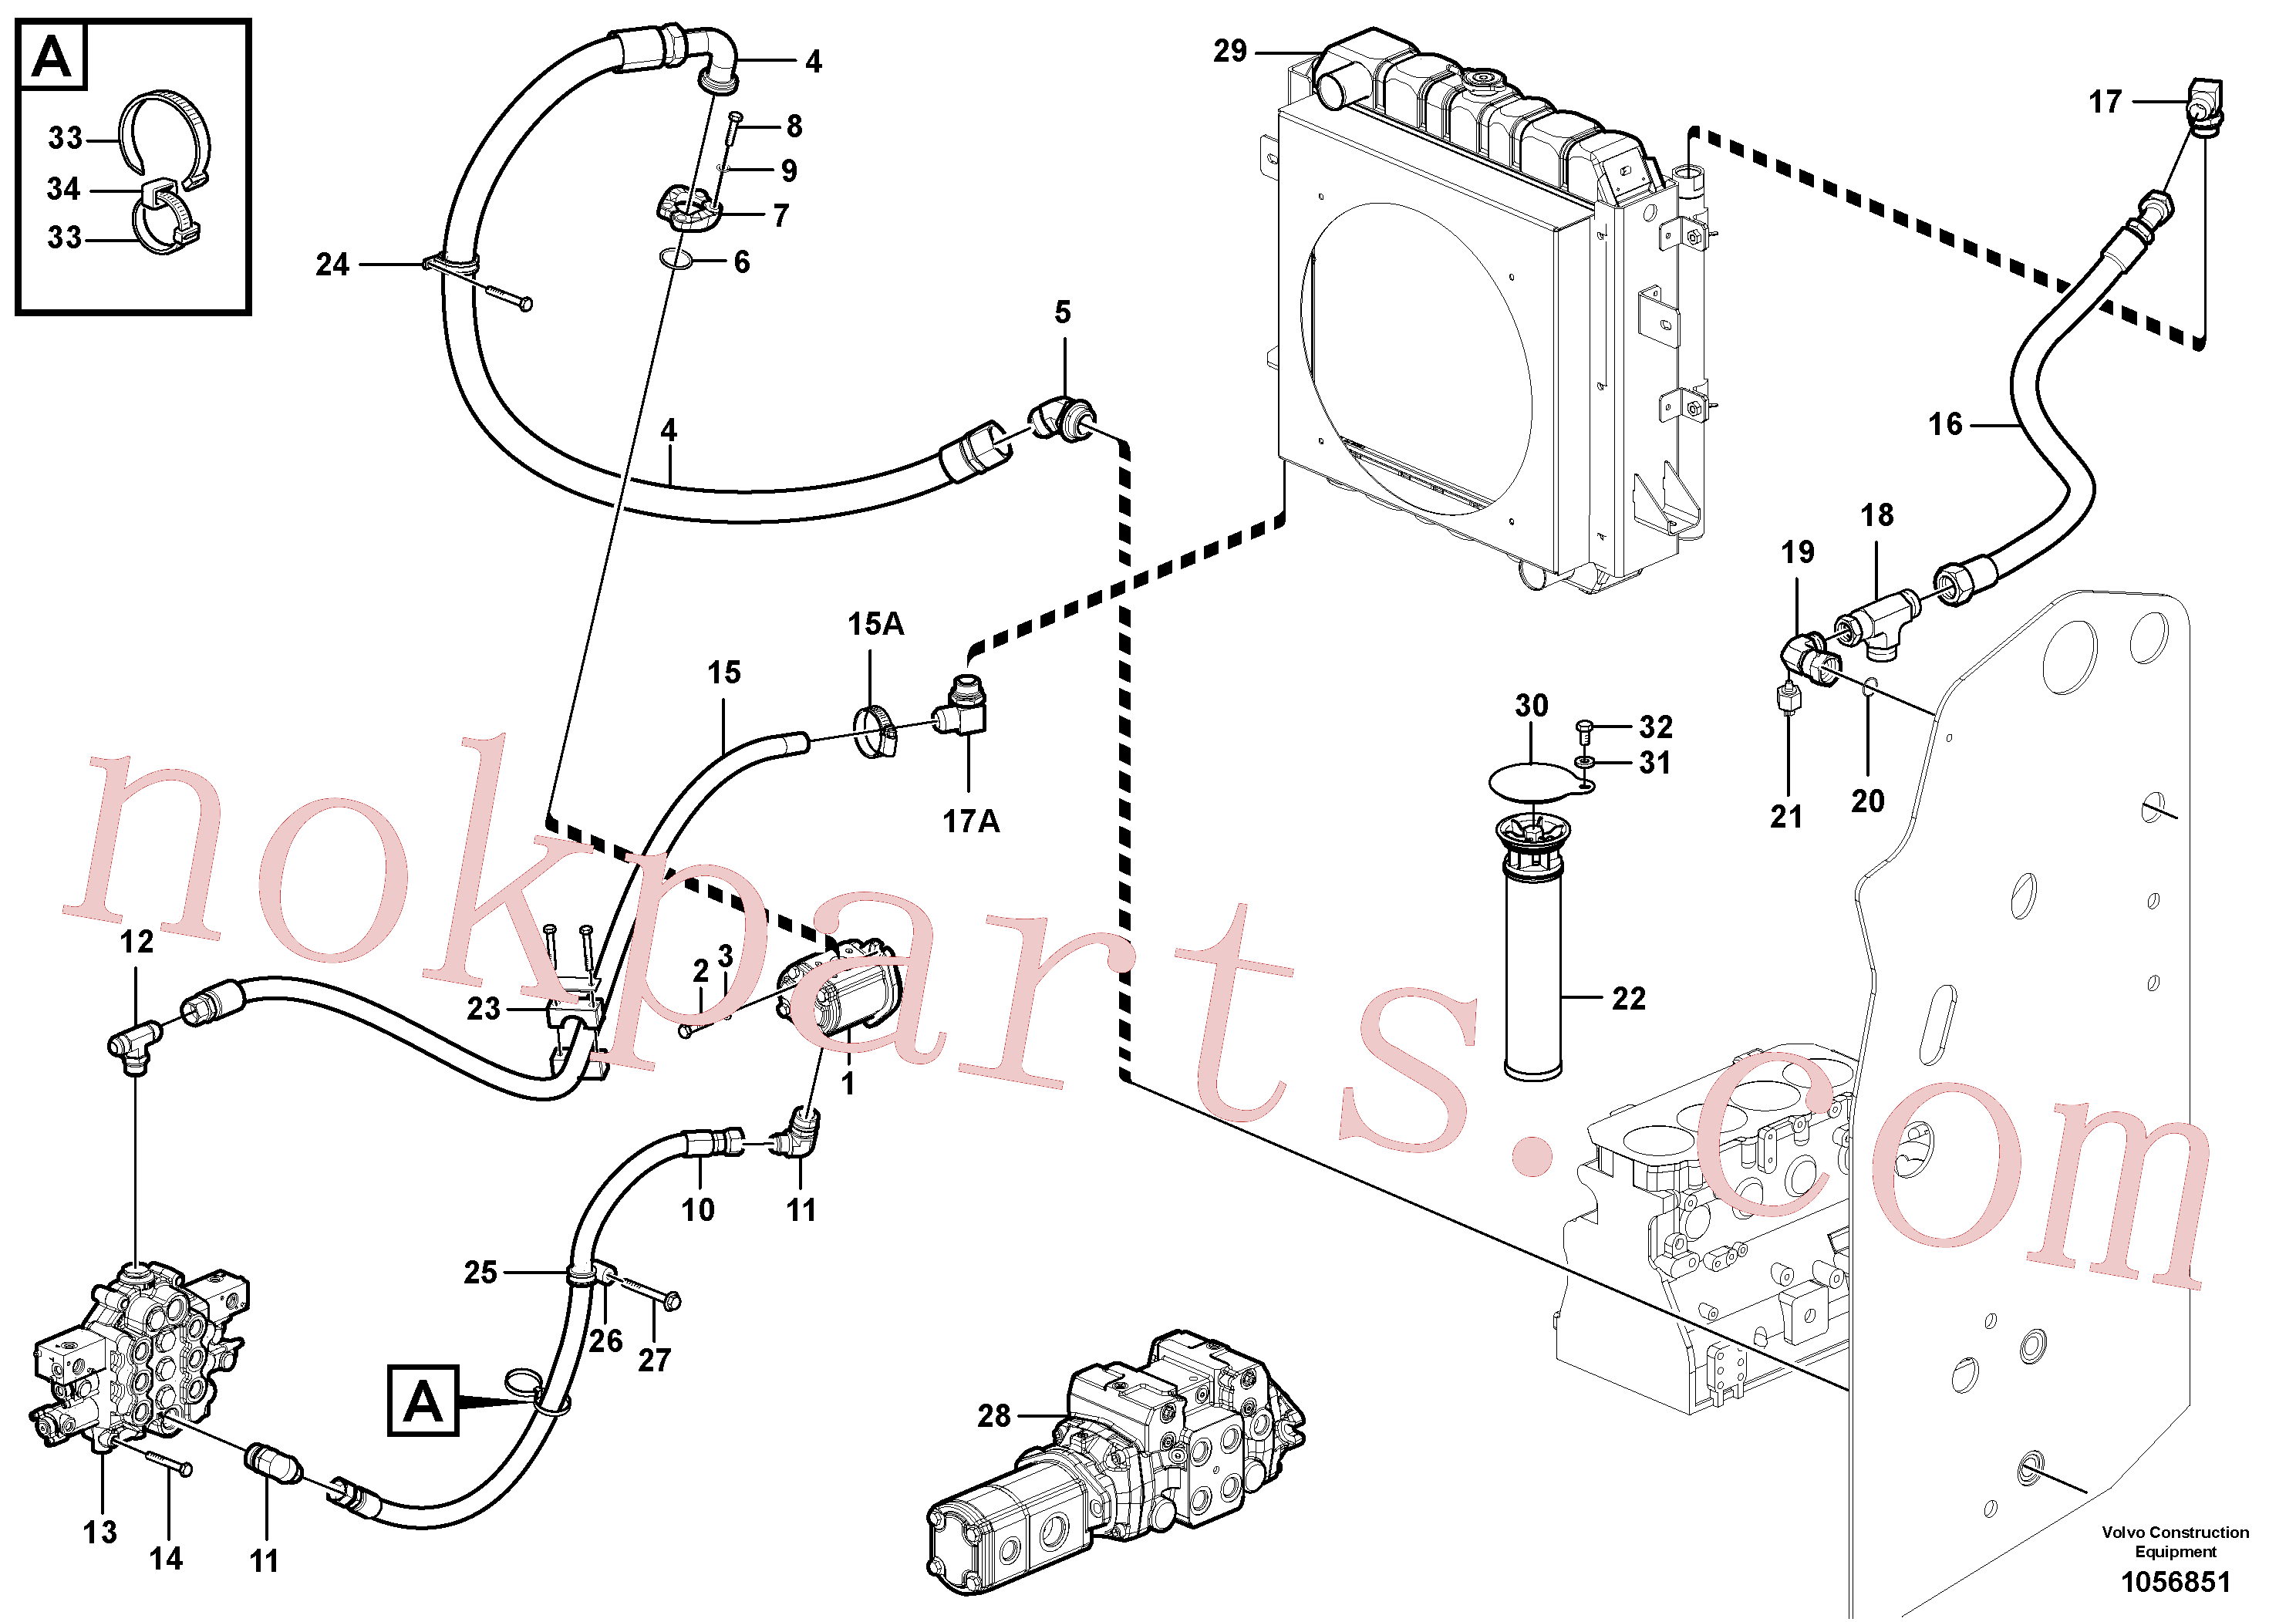 VOE965182 for Volvo Supply/return and Cooling Circuits(1056851 assembly)